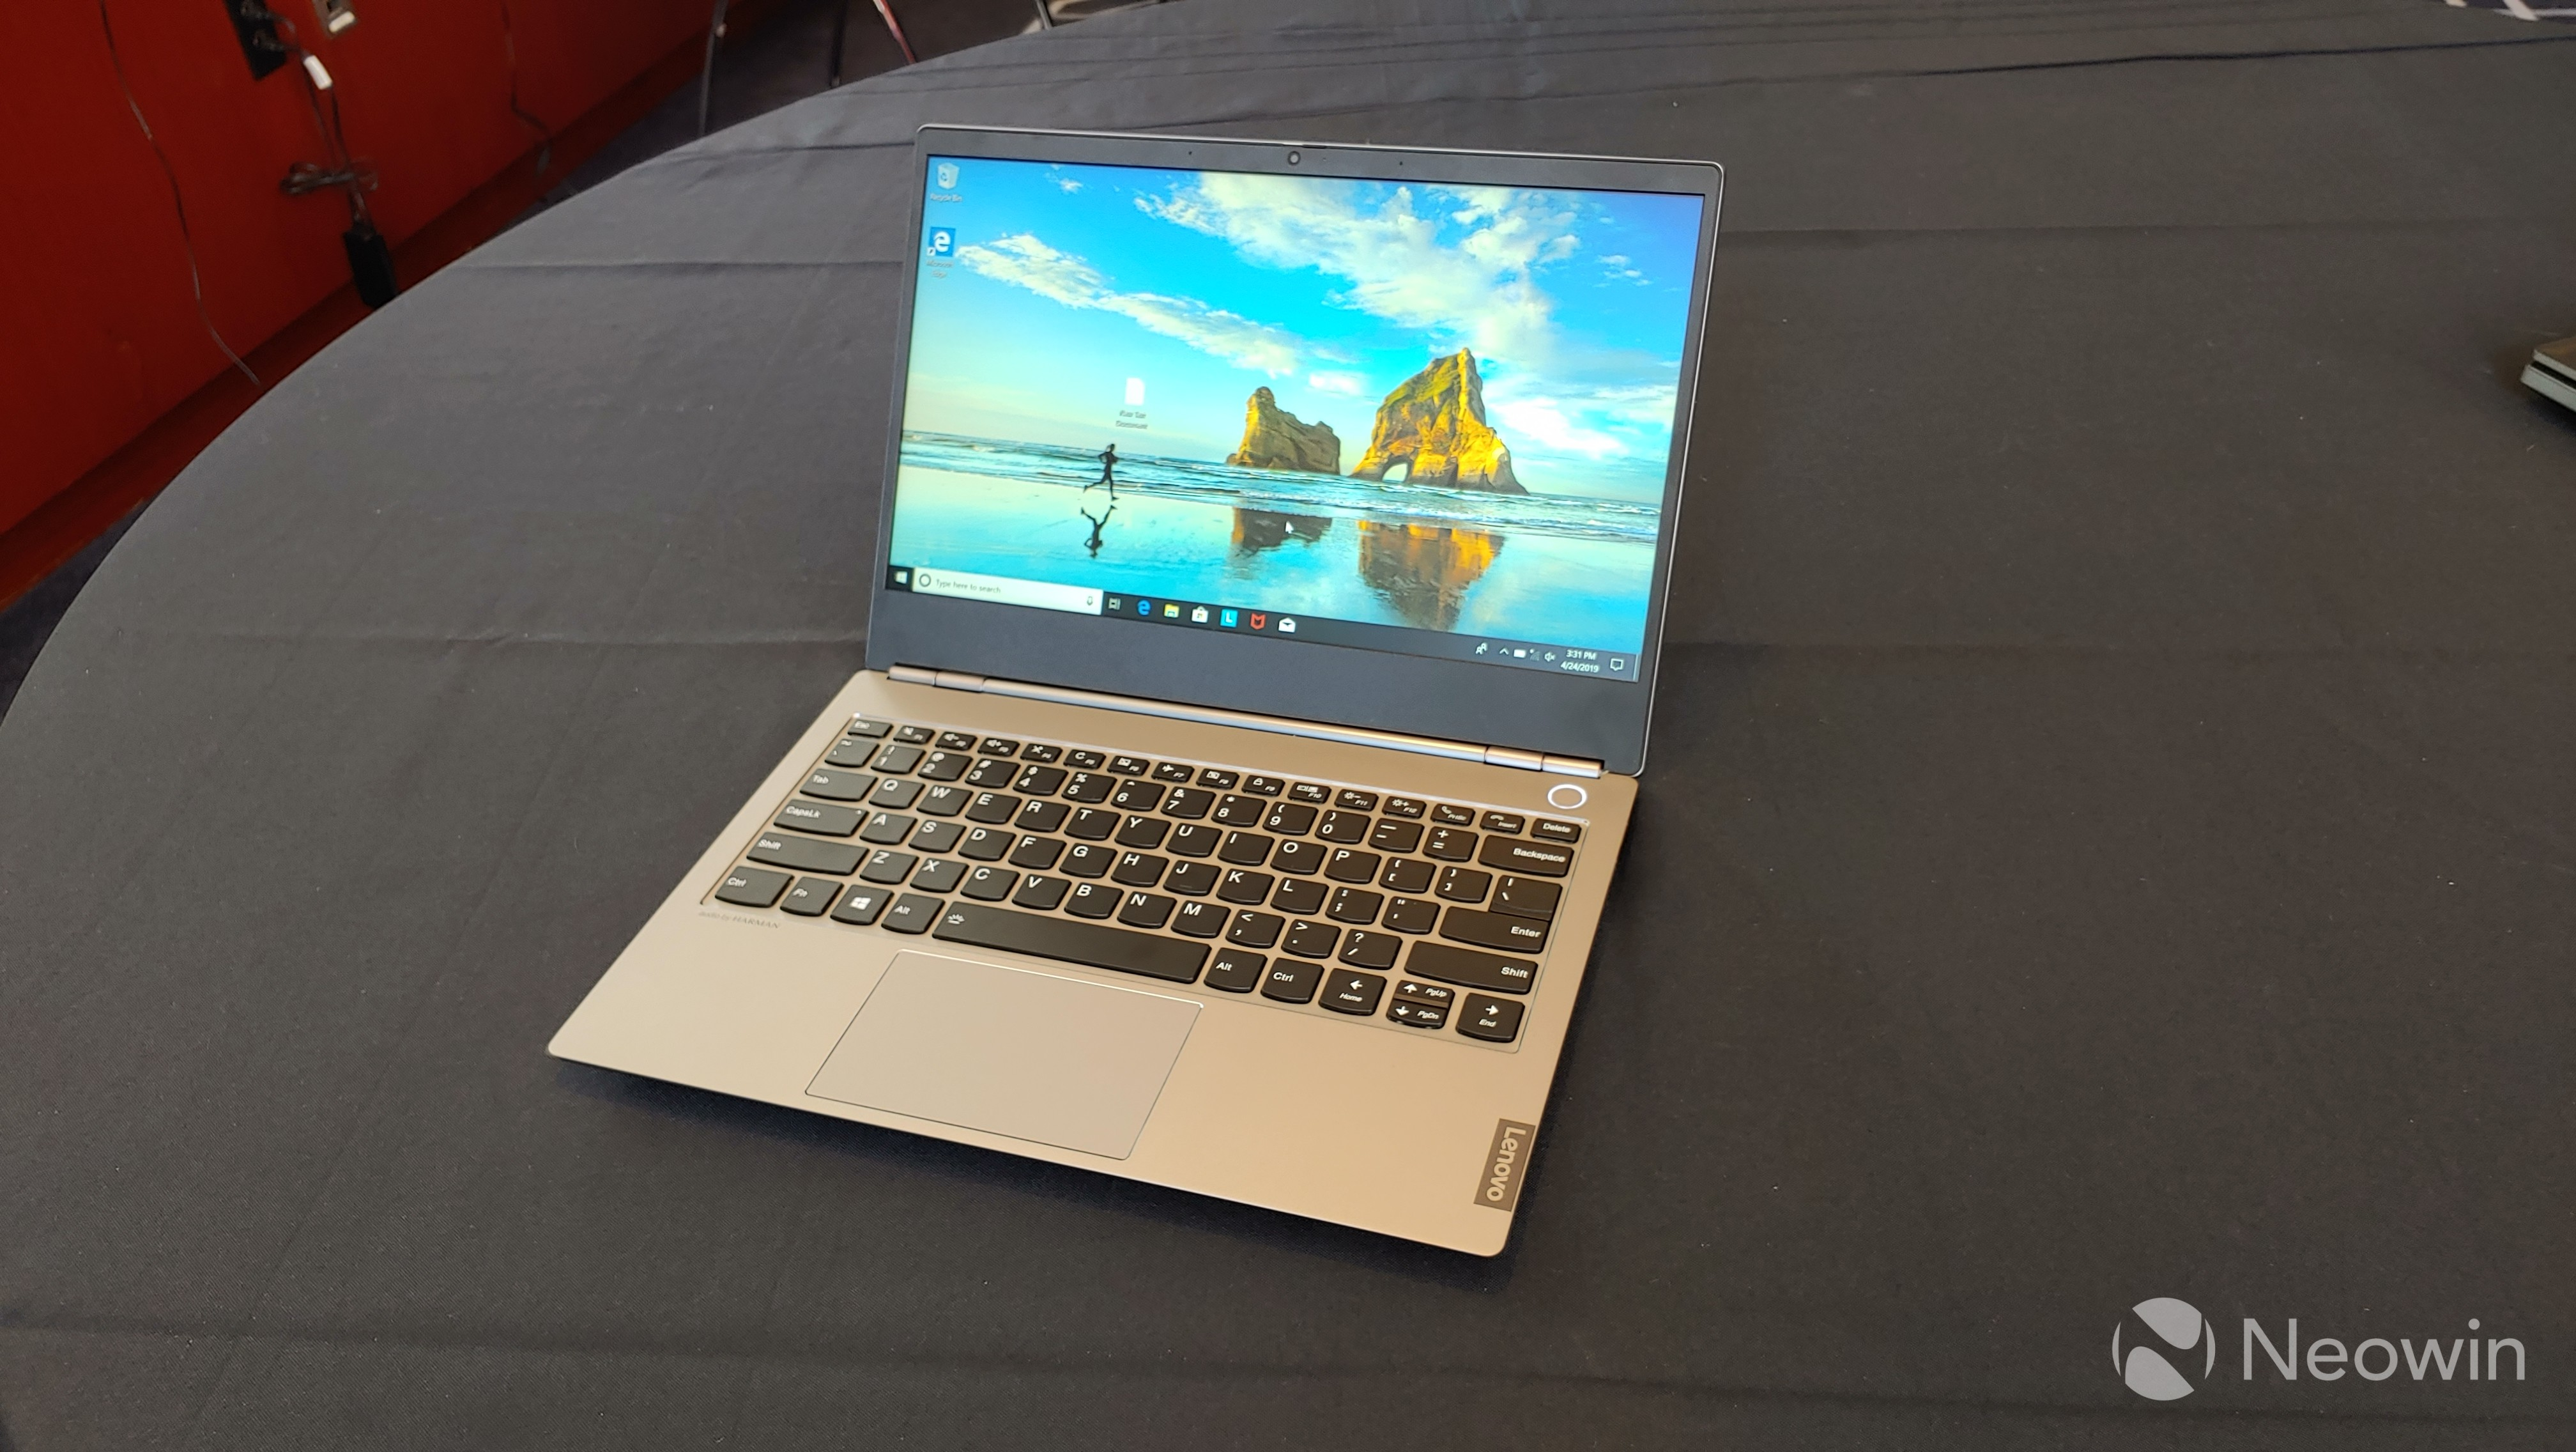 Lenovo has a new Think laptop brand called ThinkBook